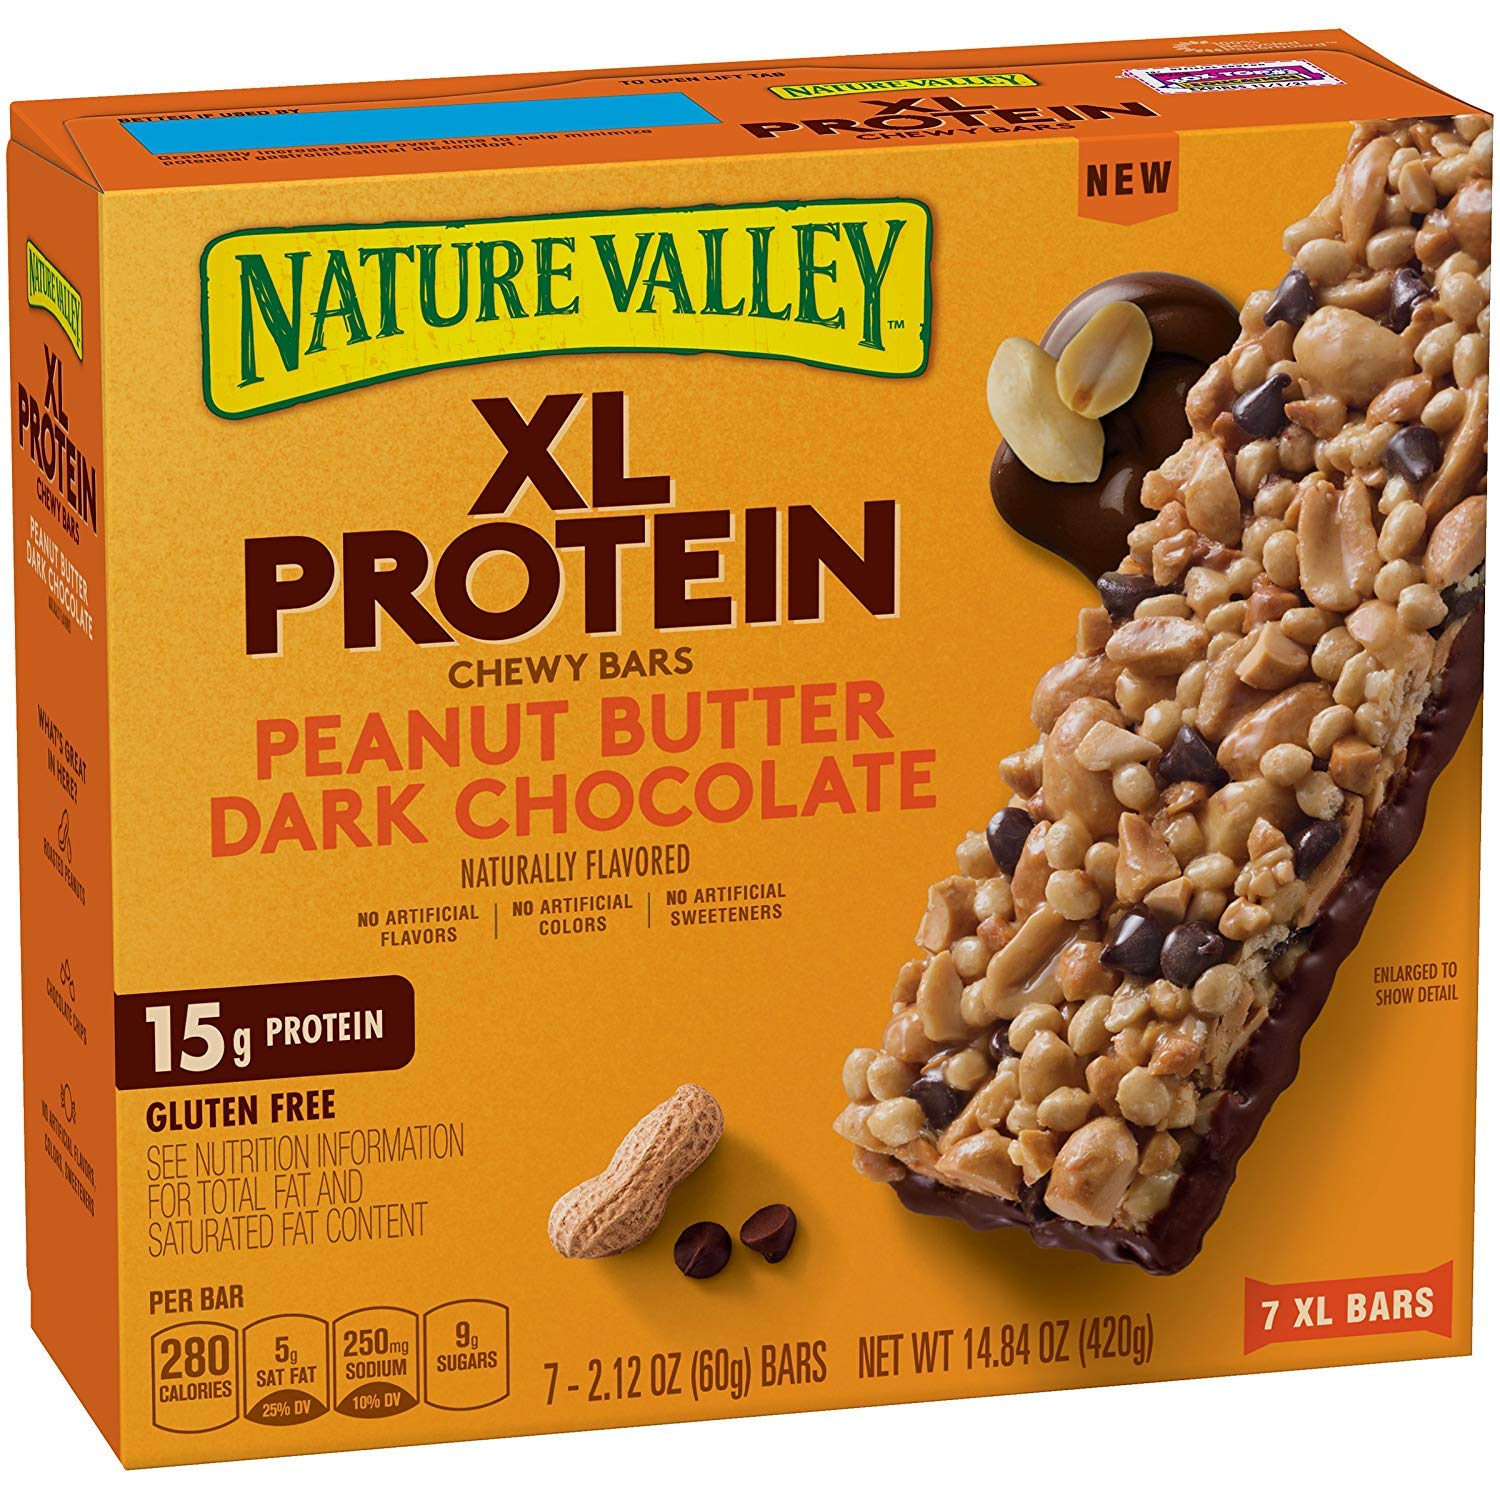 Nature Valley Chewy Granola Bar, XL Protein, Gluten Free, Peanut Butter Dark Chocolate, 7 Bars, 2.12 oz, 42 Bars (3 Boxes)